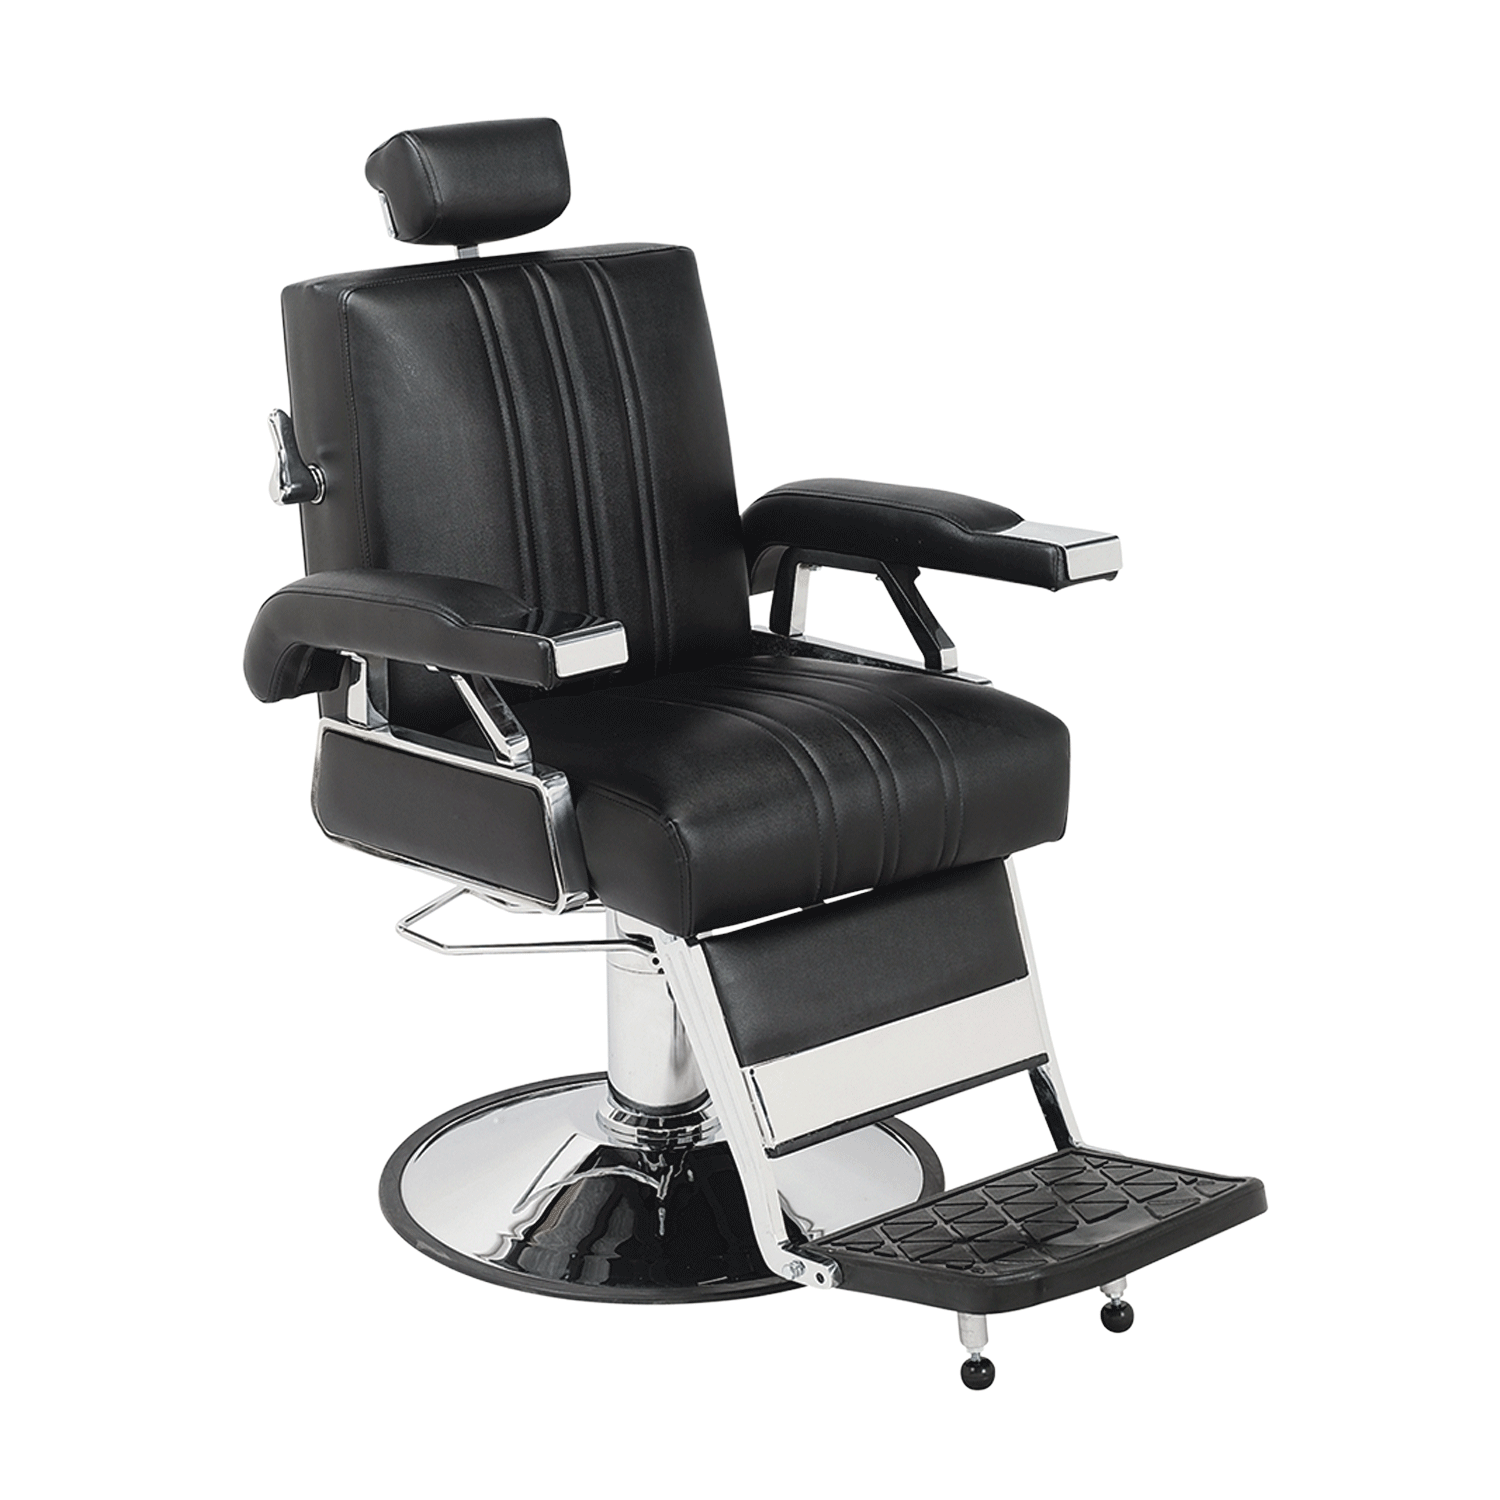 koken barber chair for sale coleman camp unique chairs rtty1